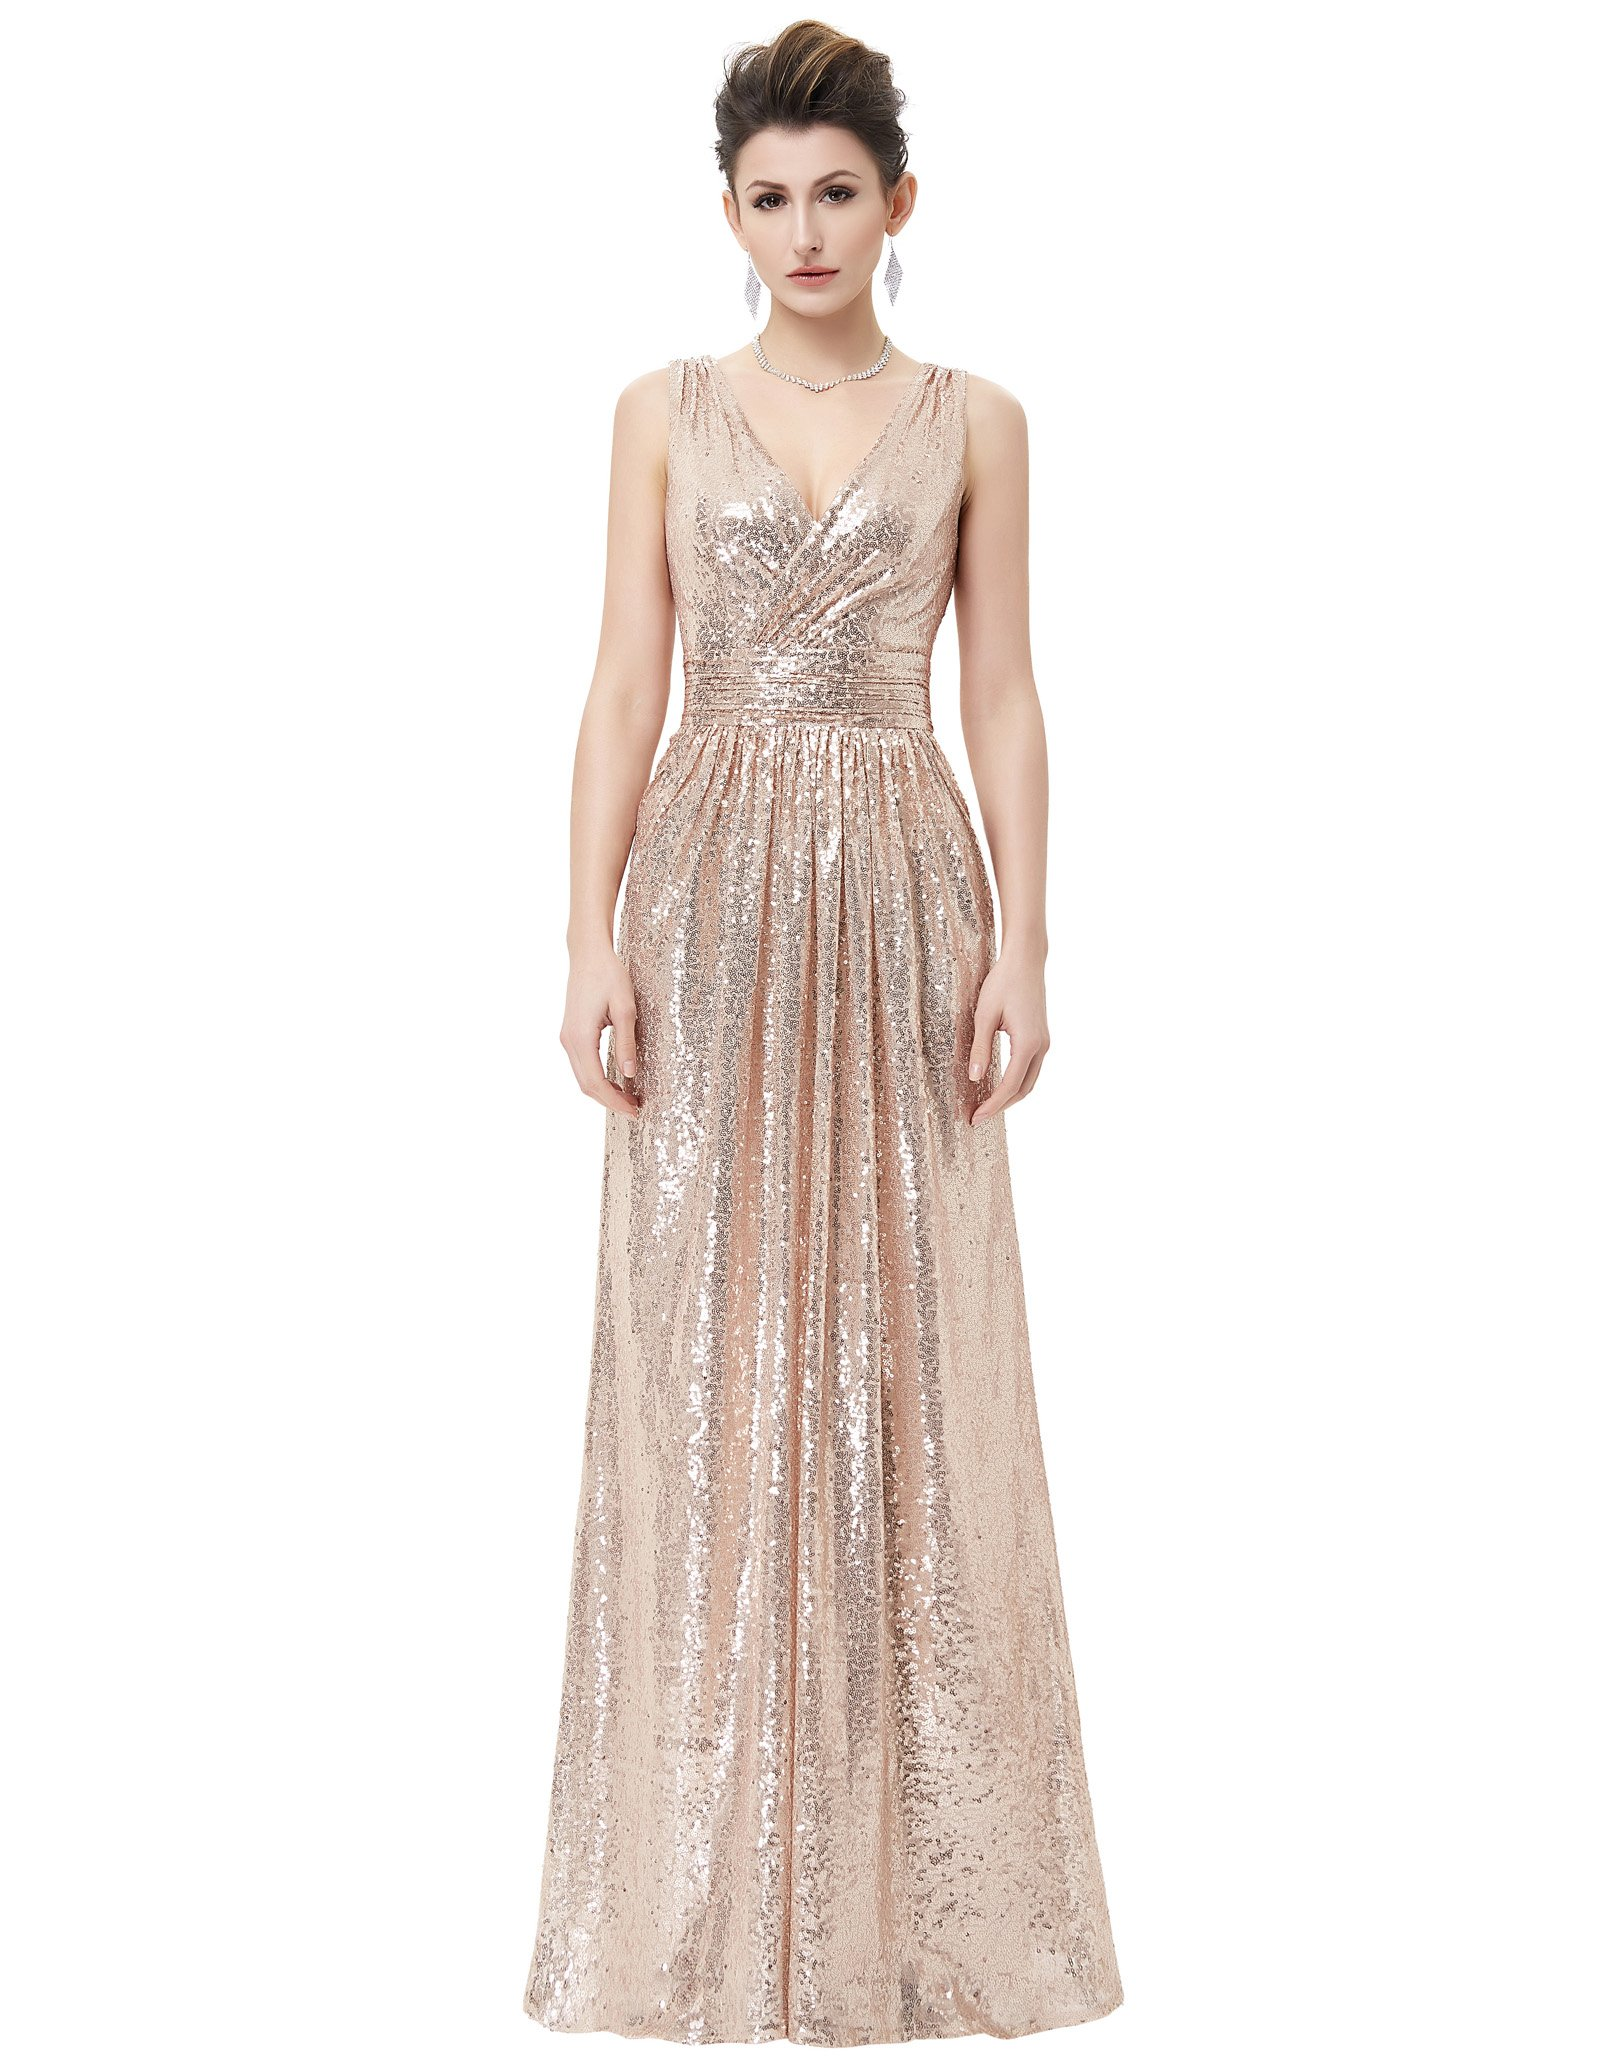 Kate Kasin Rose Gold Sequined Bridesmaid Dress Empired Waist for Evening Plus Size USA18 KK199-2